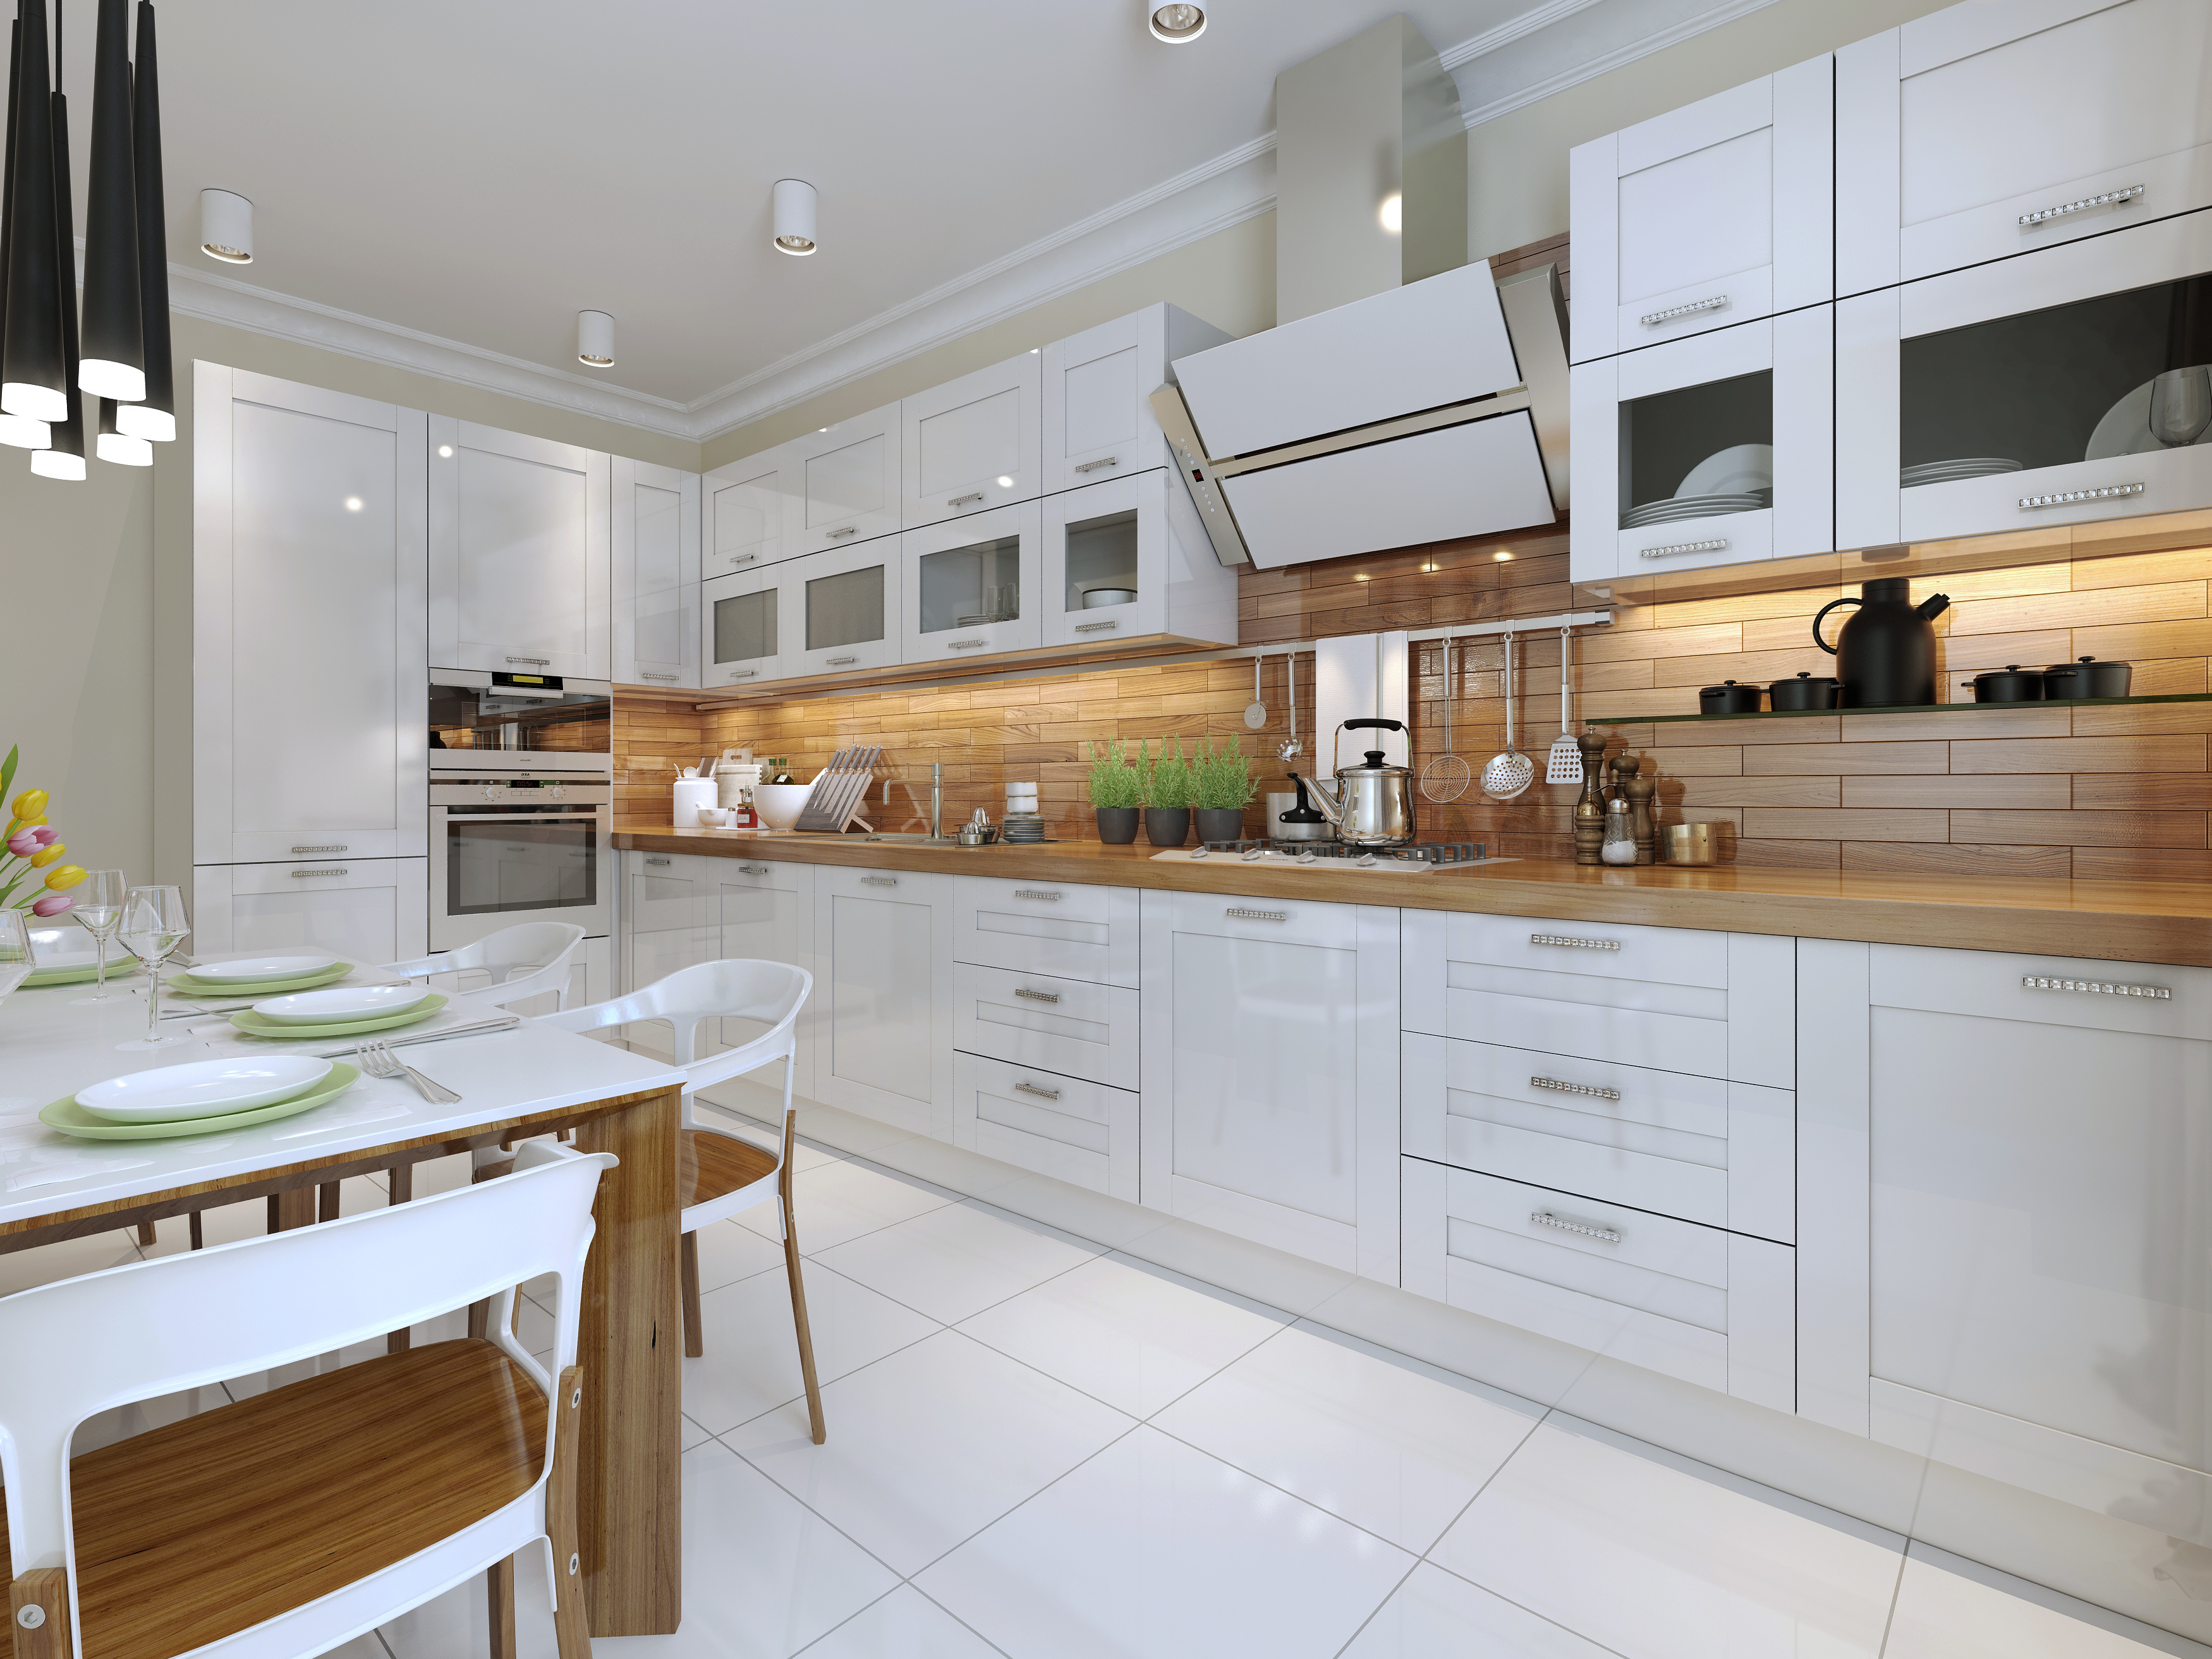 Kitchen country house caramel surrey sussex hampshire violet ...